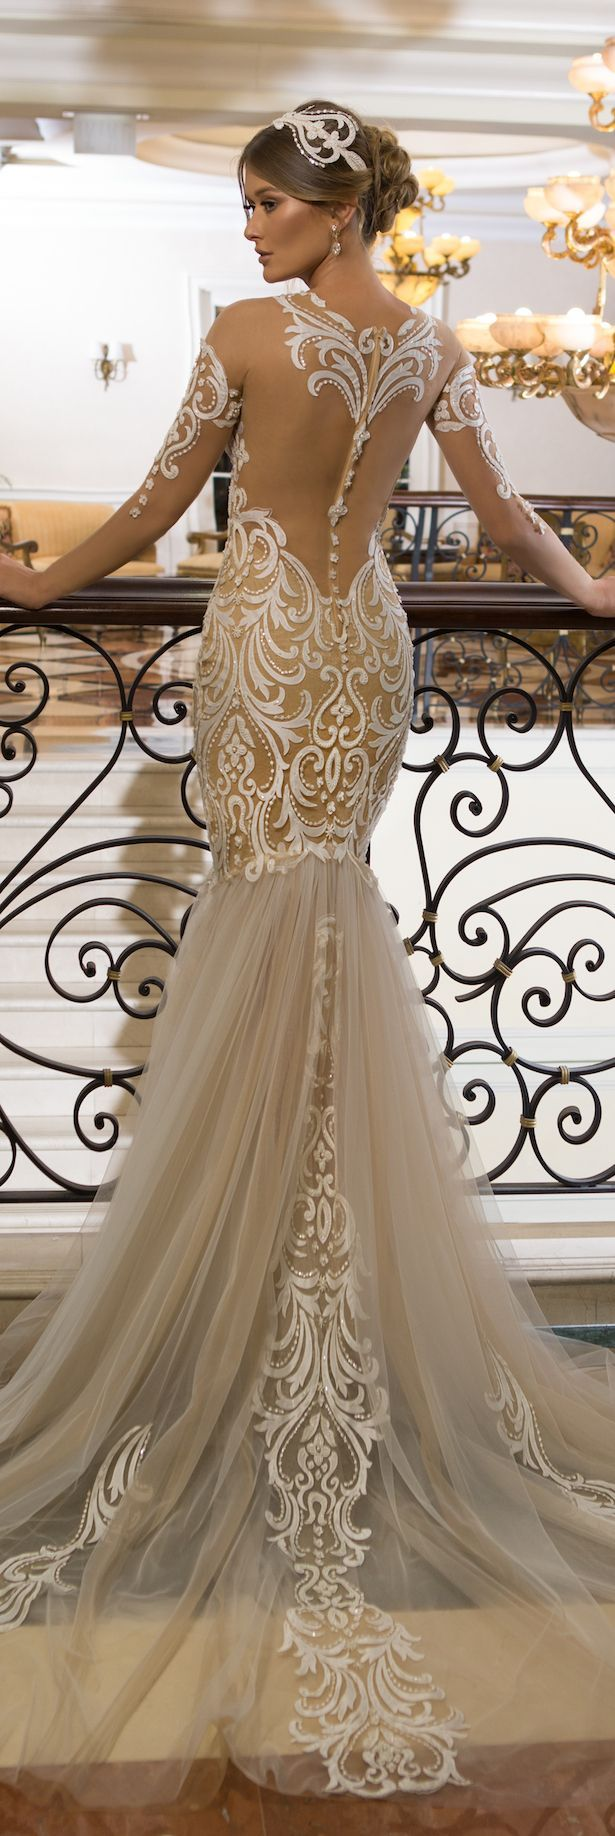 Wedding dress by naama u anat bridal the star in you collection